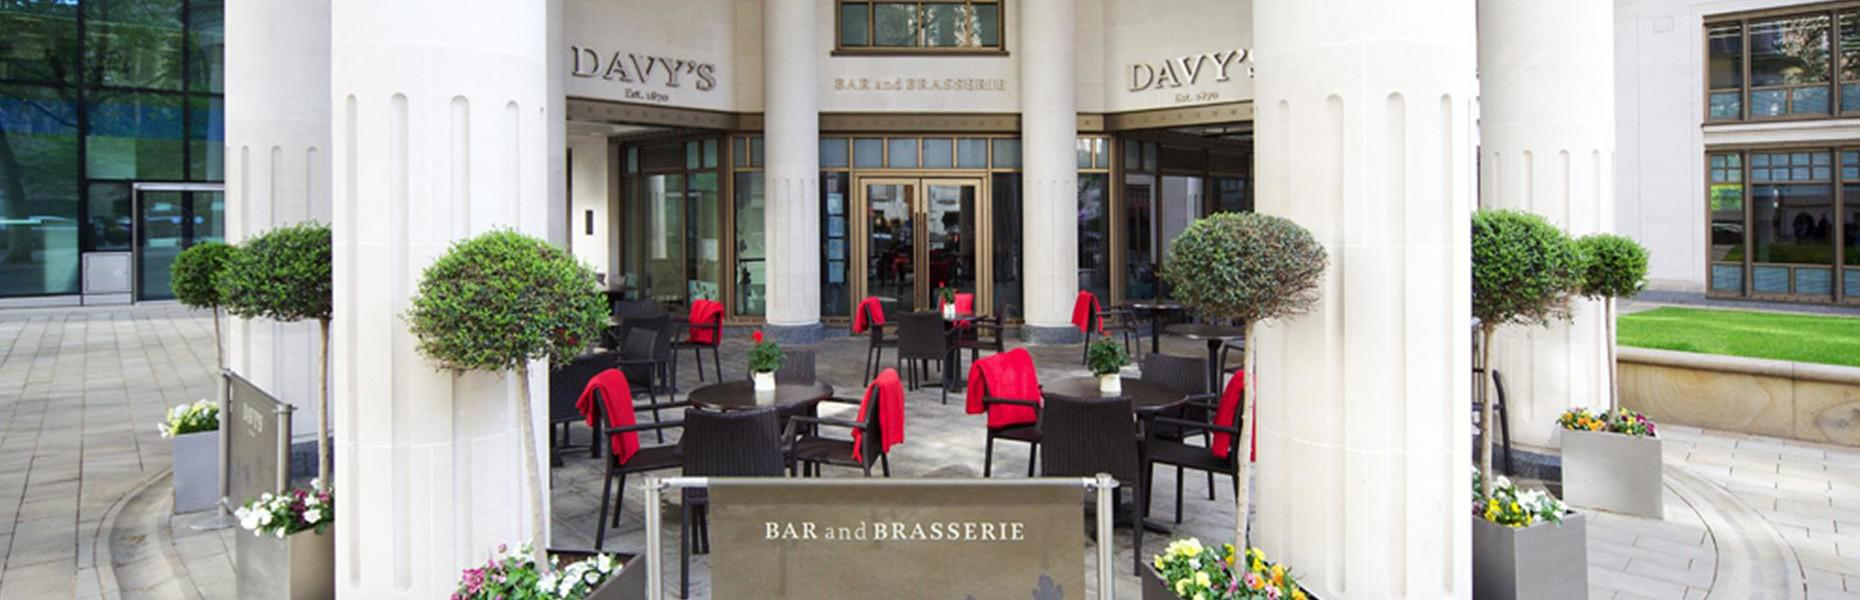 Davy's at Woolgate outside area